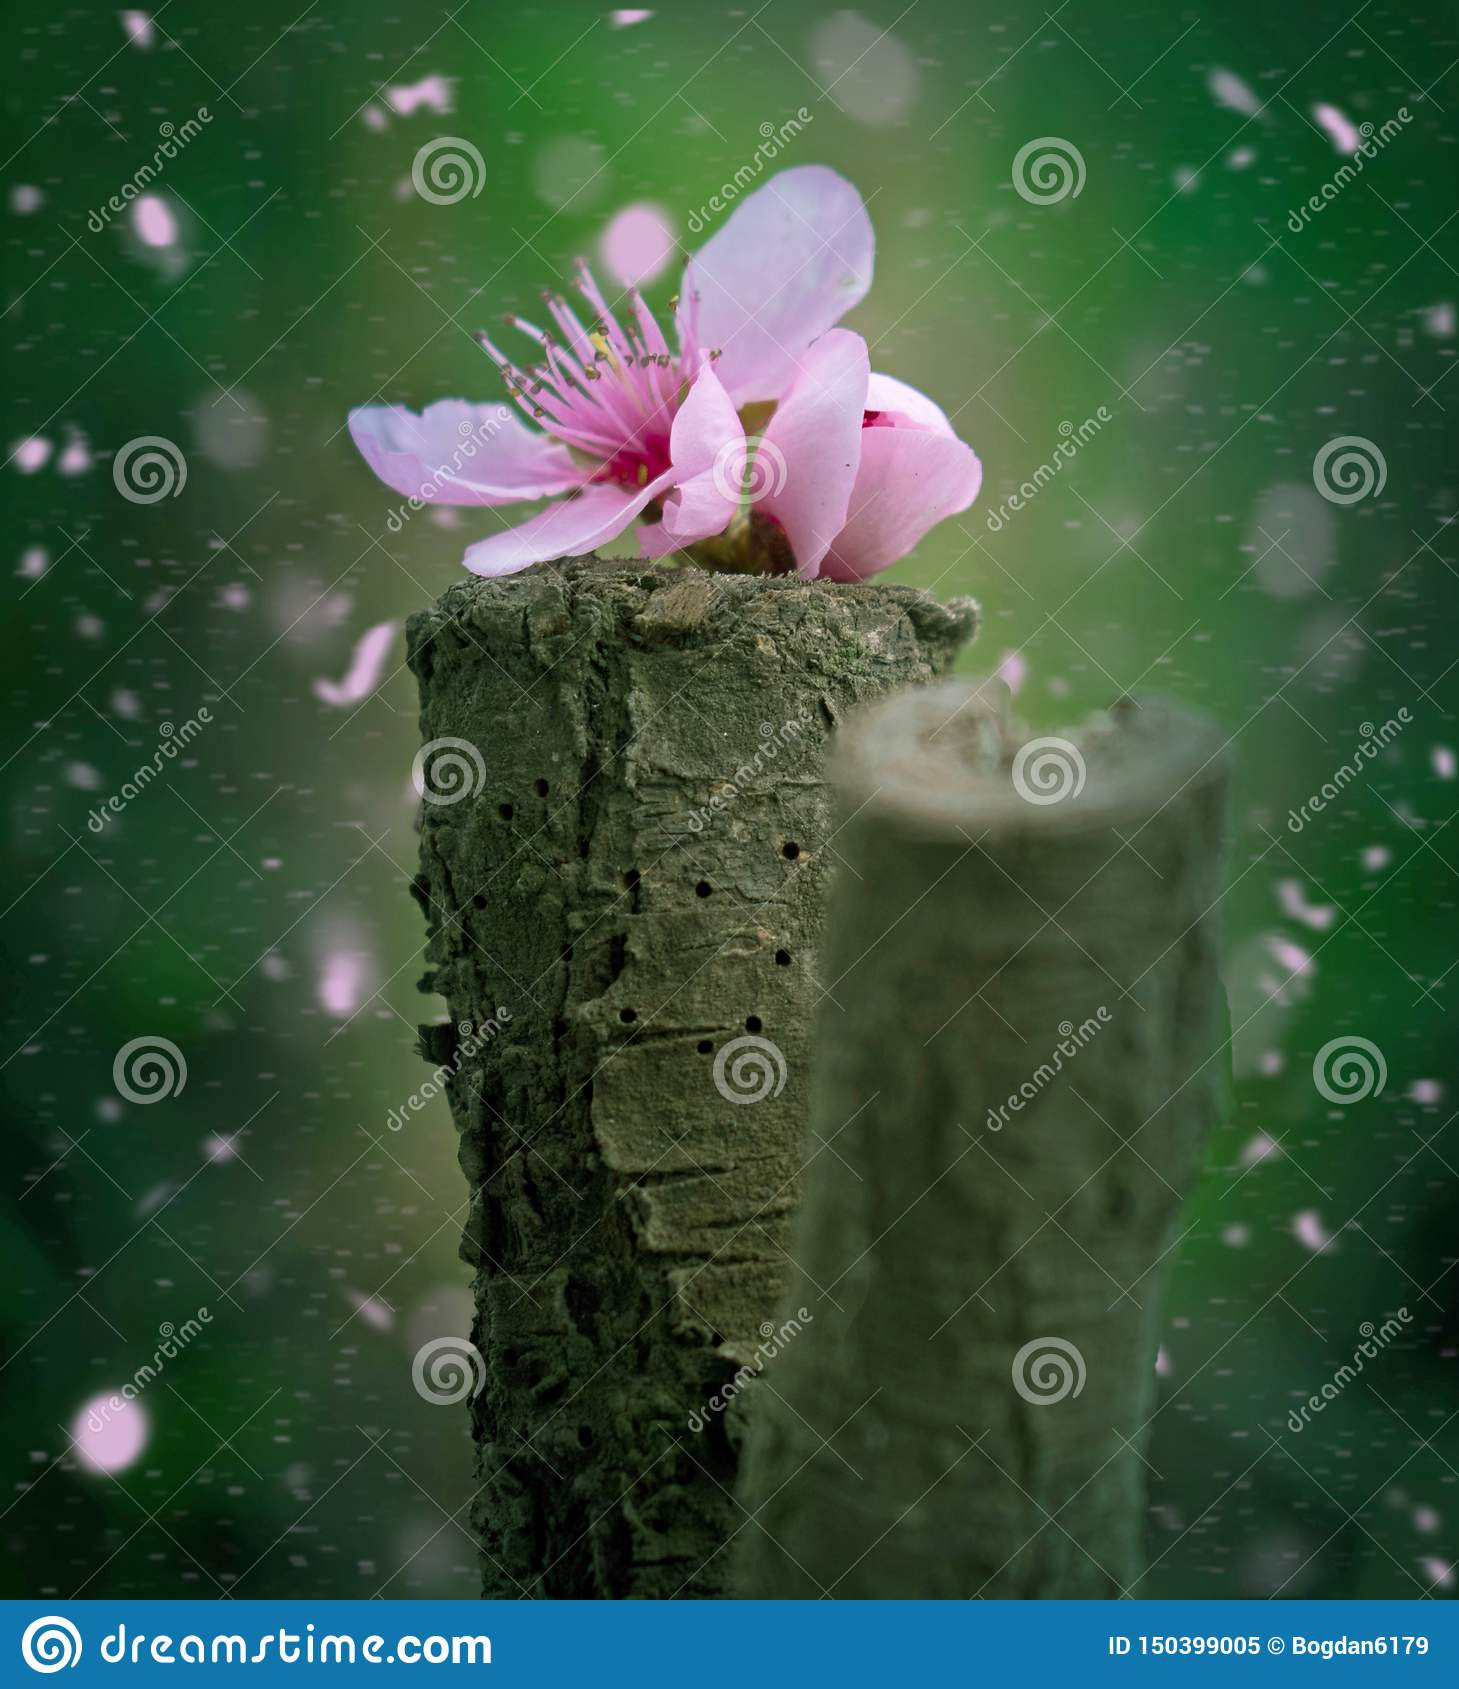 Book cover. Card.Peach blossom flower fallen on a piece of wood